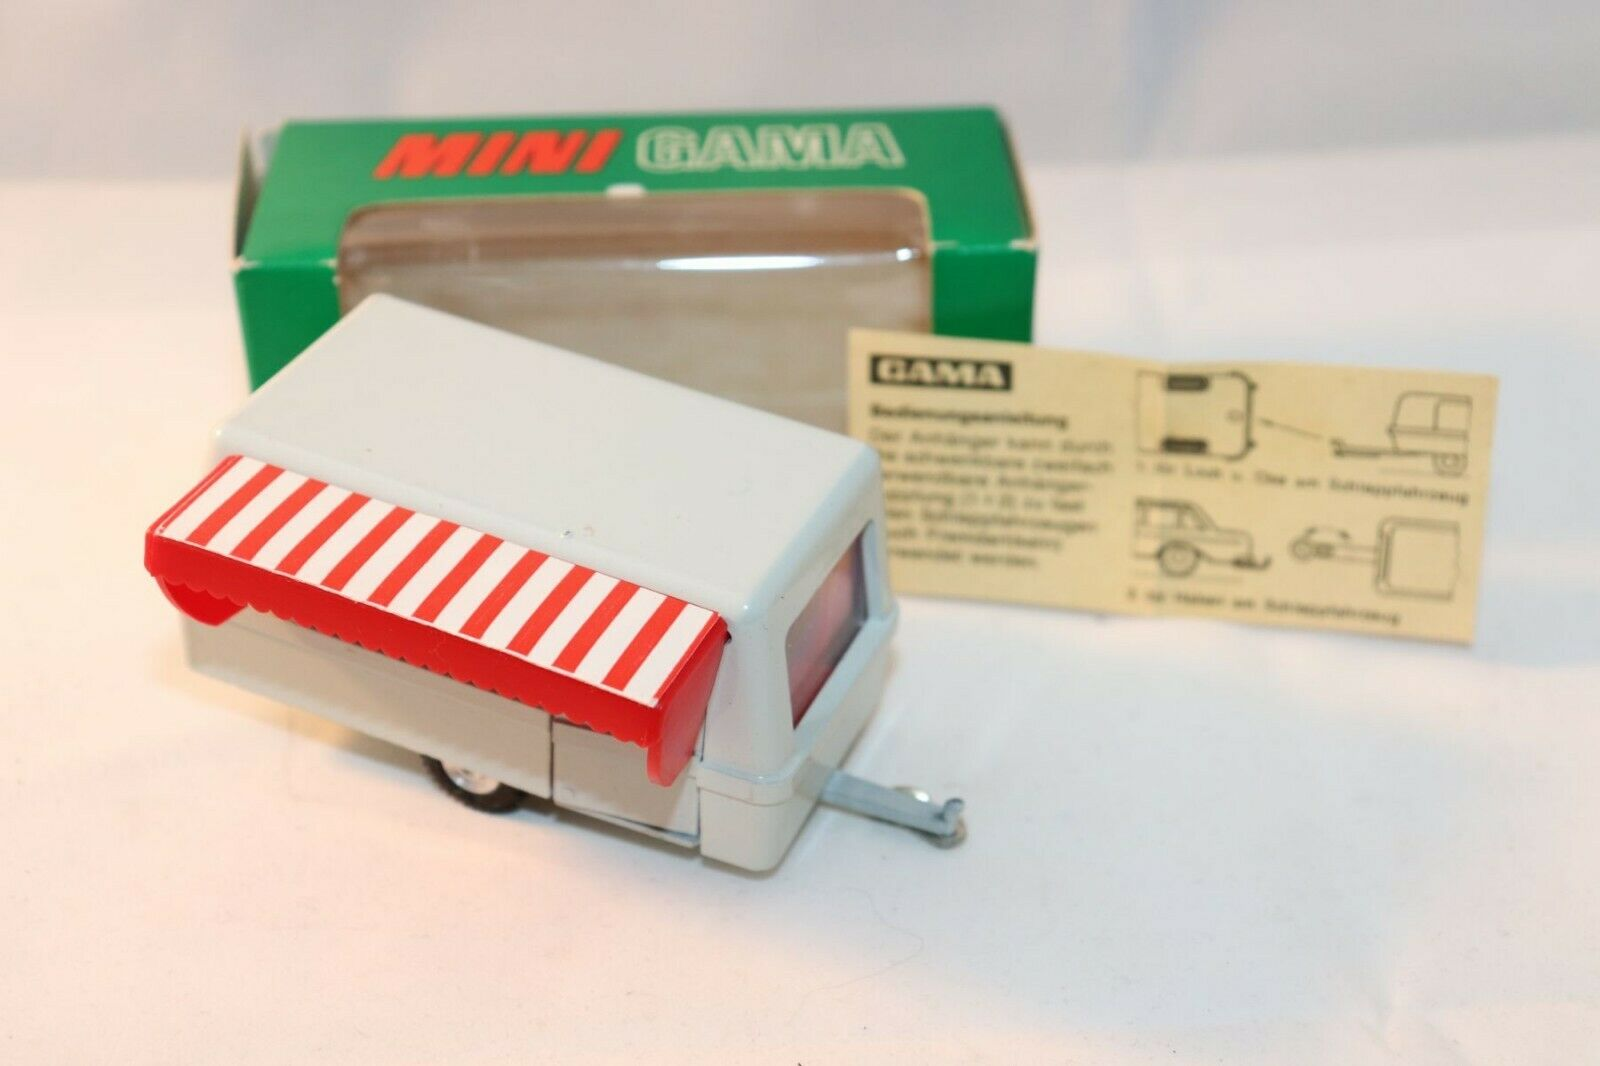 GAMA Mini 980 Camping Anhanger 1 46 perfect mint in box original condition